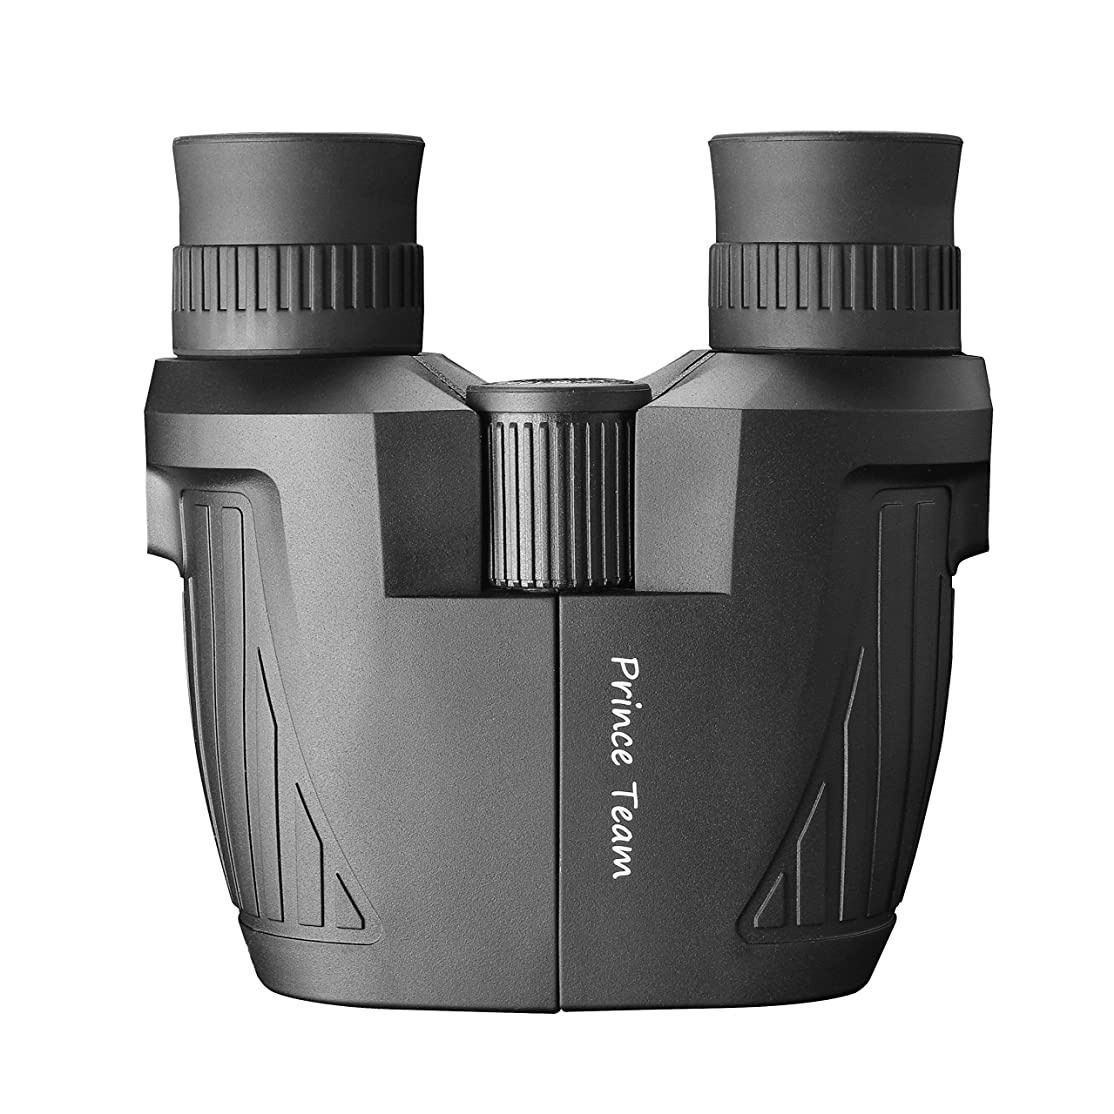 Prince Team 10x25 Folding High Powered Binoculars (BAK4,Green Lens) Lightweight Night Vision Clear Bird Watching Great for Outdoor Sports Games and Concerts kwziqu7387